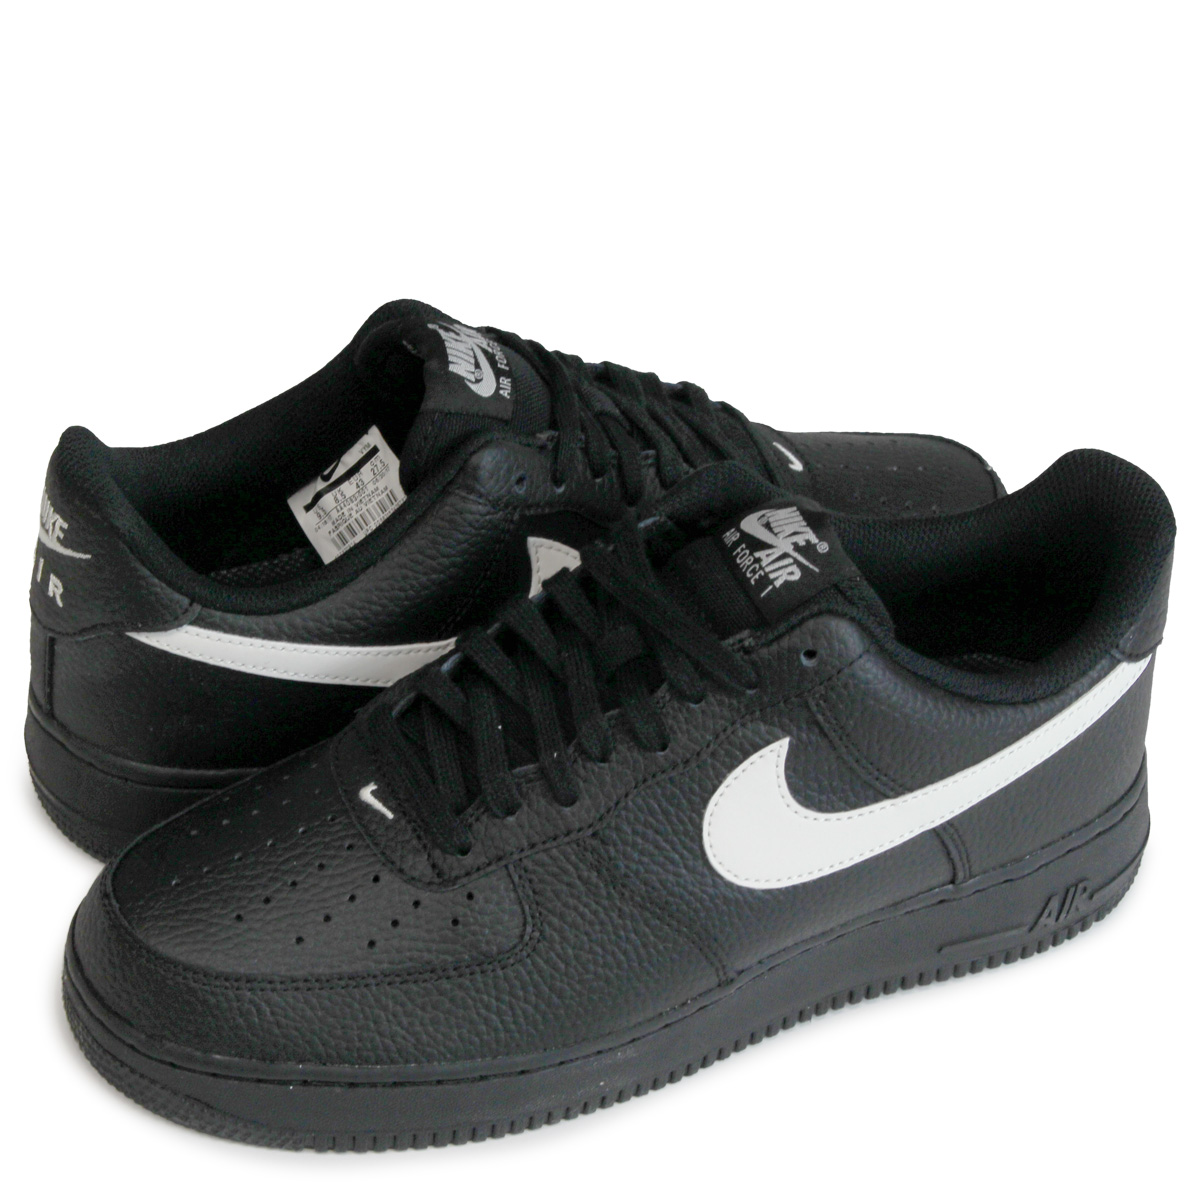 7070fcdee10 Whats up Sports  NIKE AIR FORCE 1 Nike air force 1 07 sneakers ...